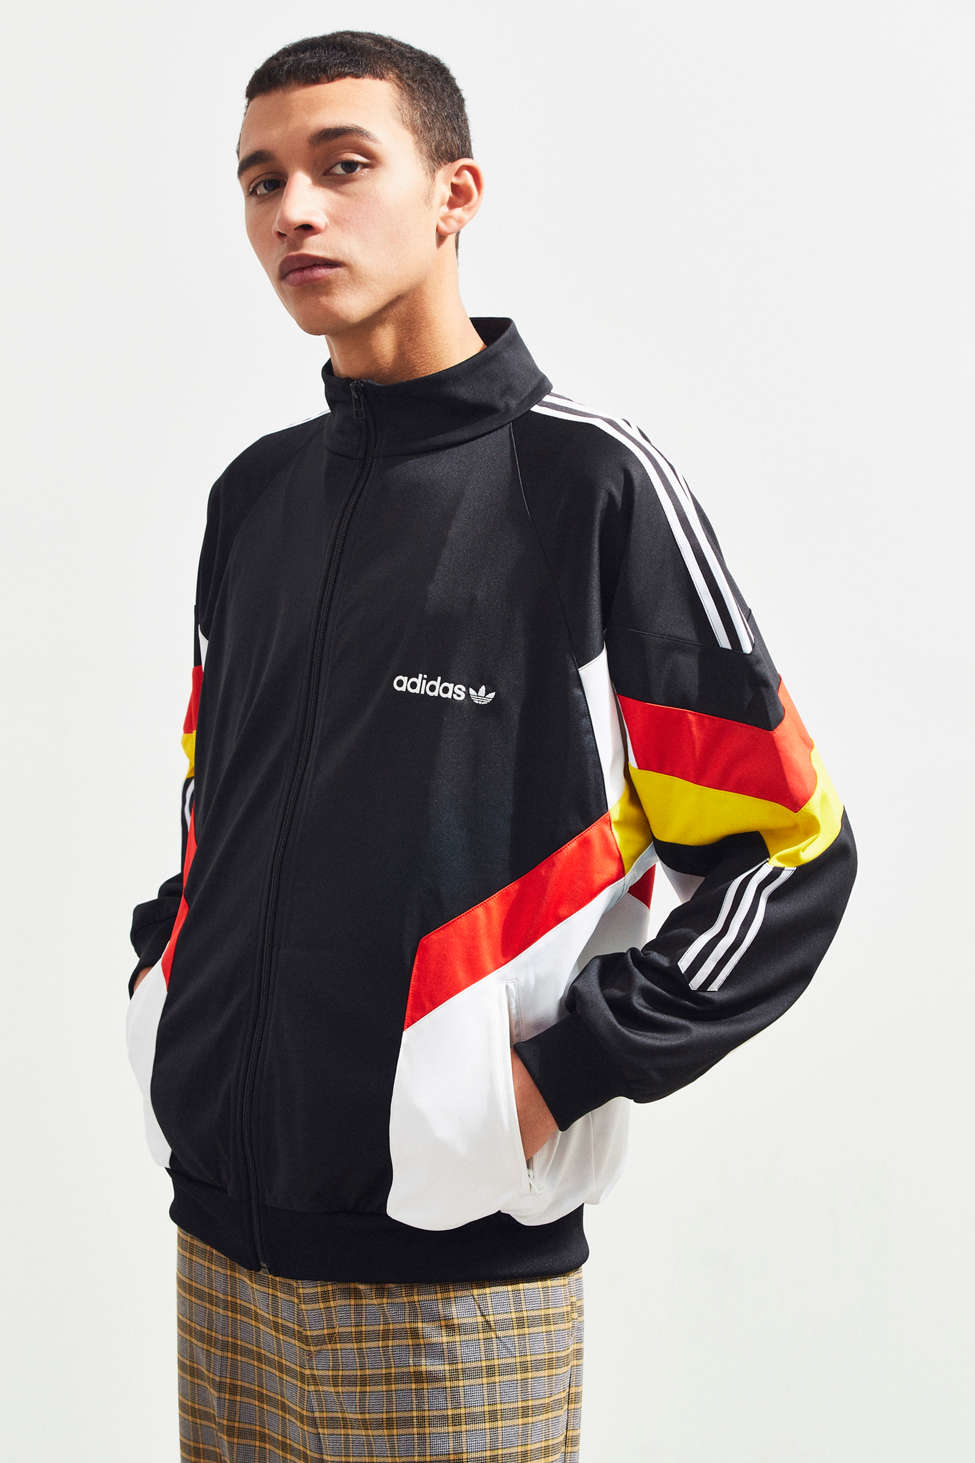 adidas track giacca urban outfitters, germania